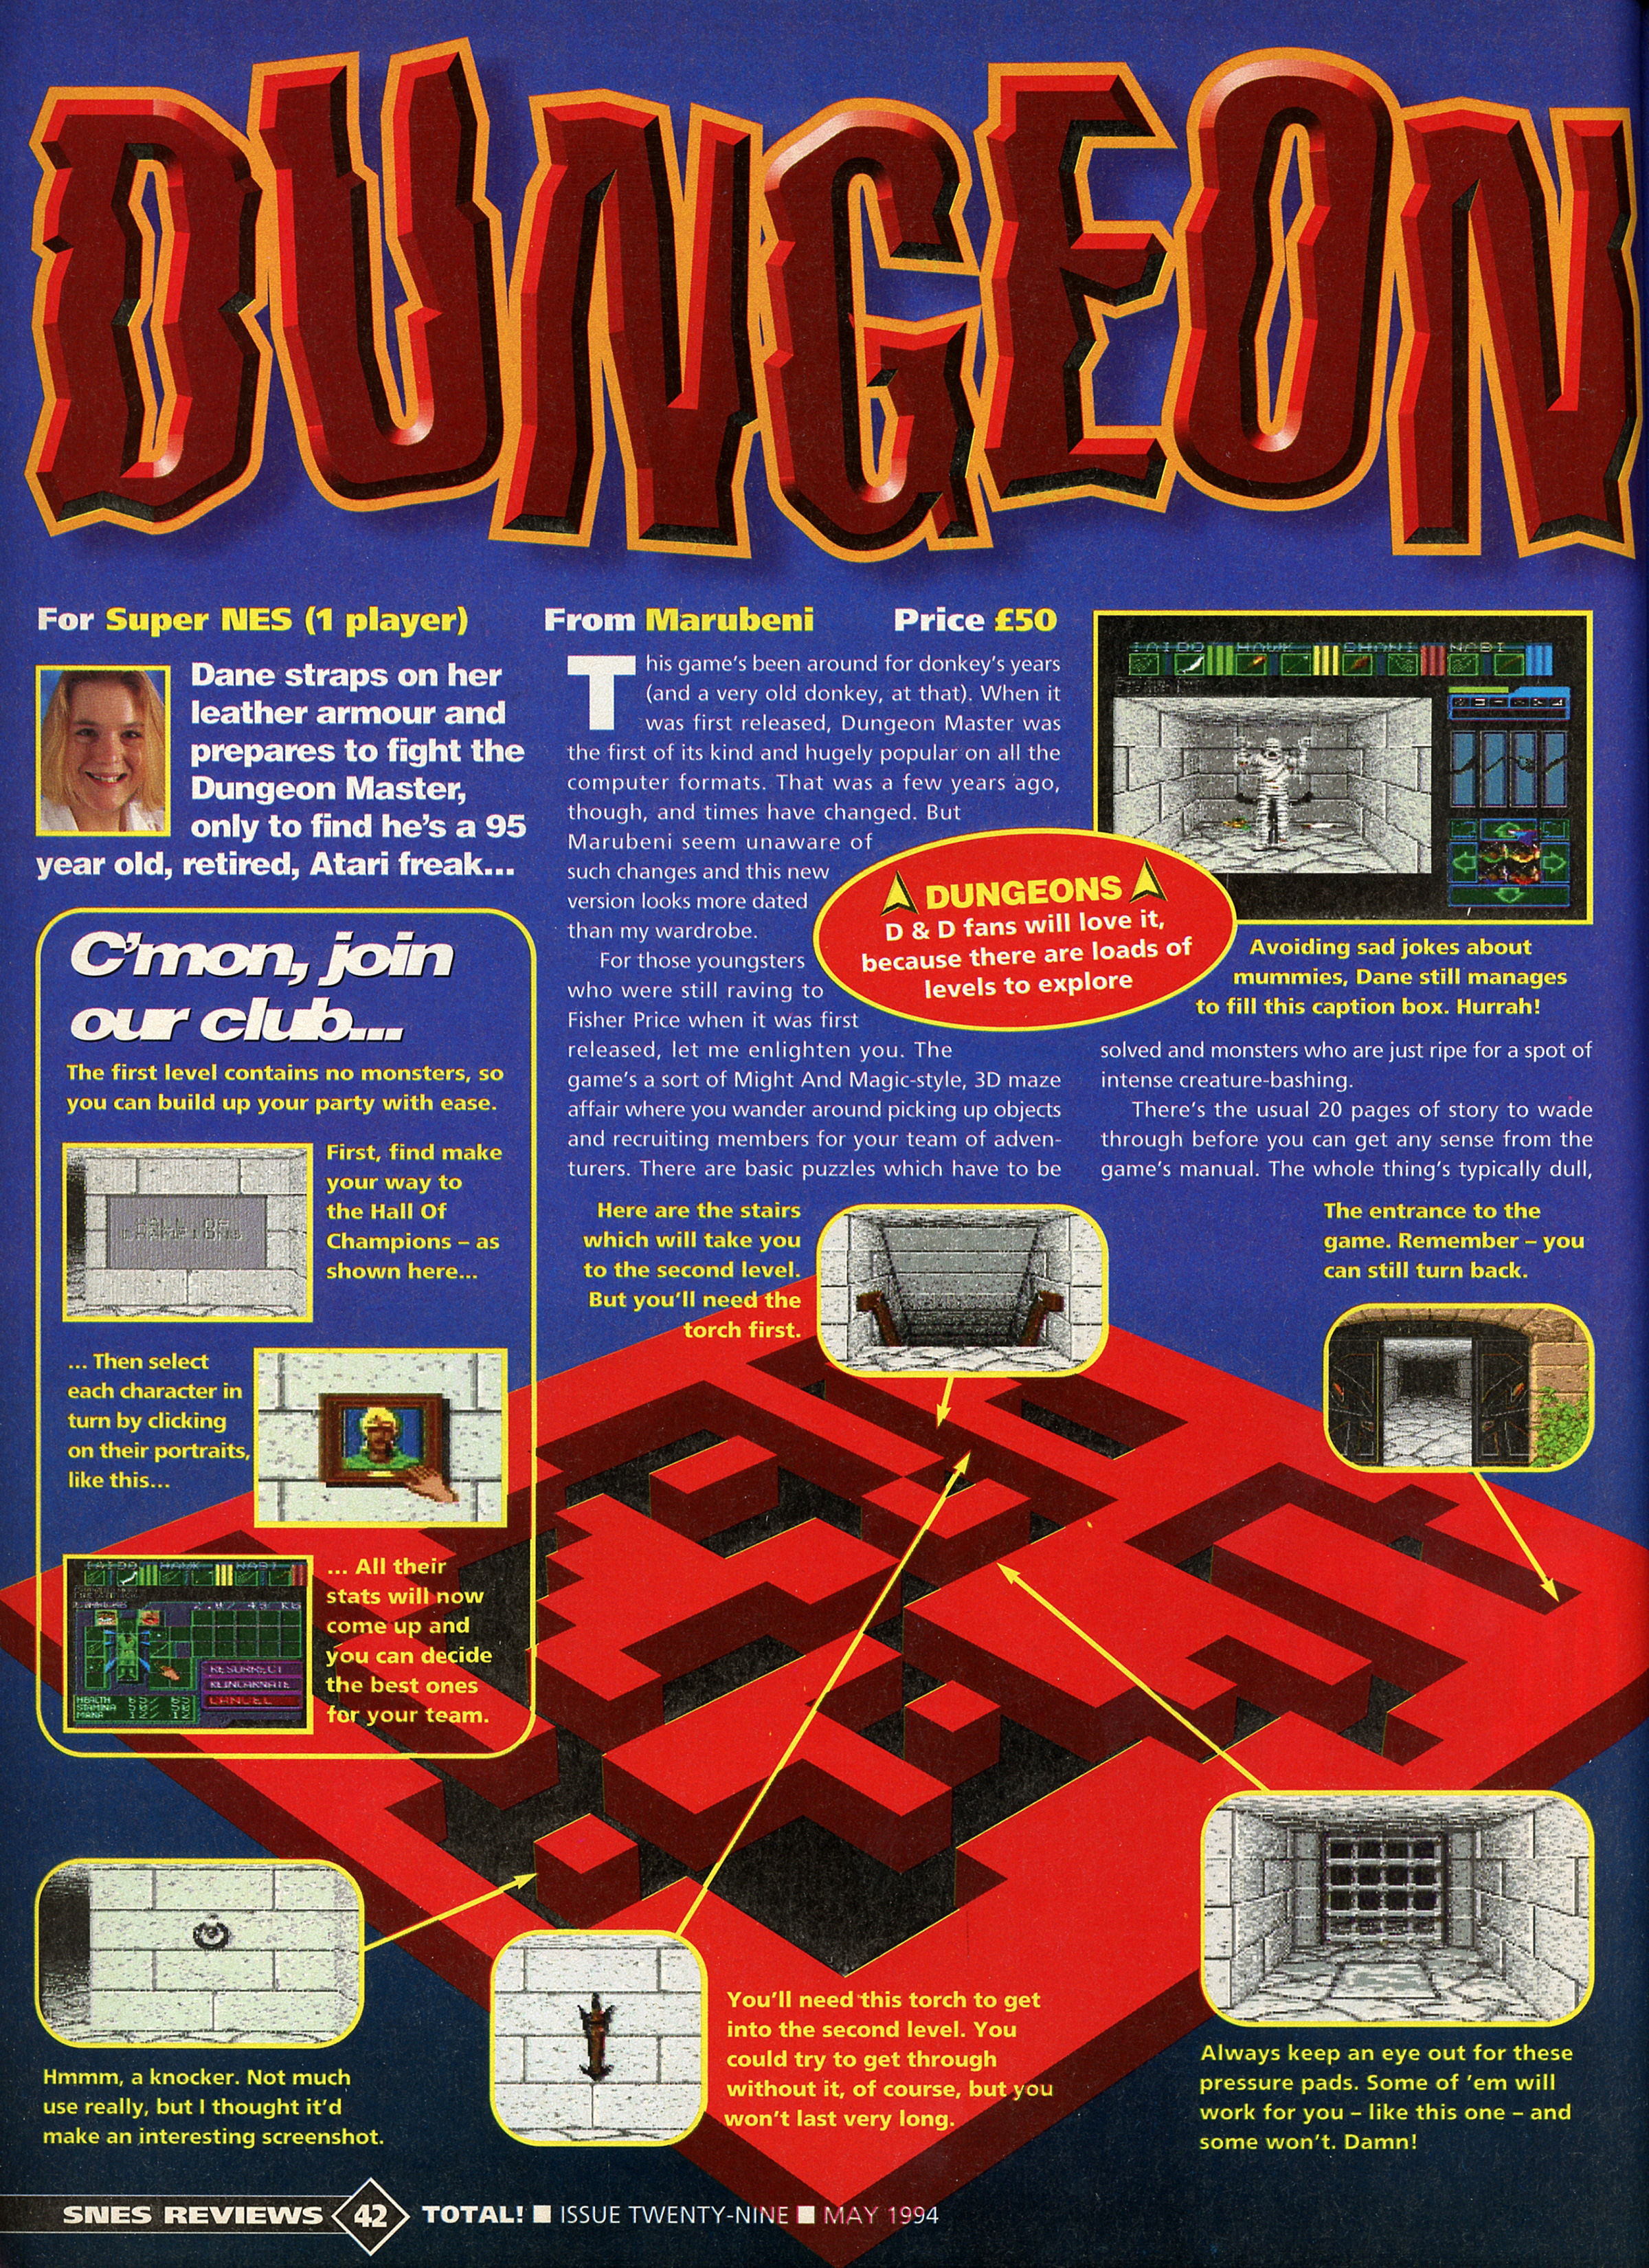 Dungeon Master for Super NES Review published in British magazine 'Total!', Issue #29 May 1994, Page 42